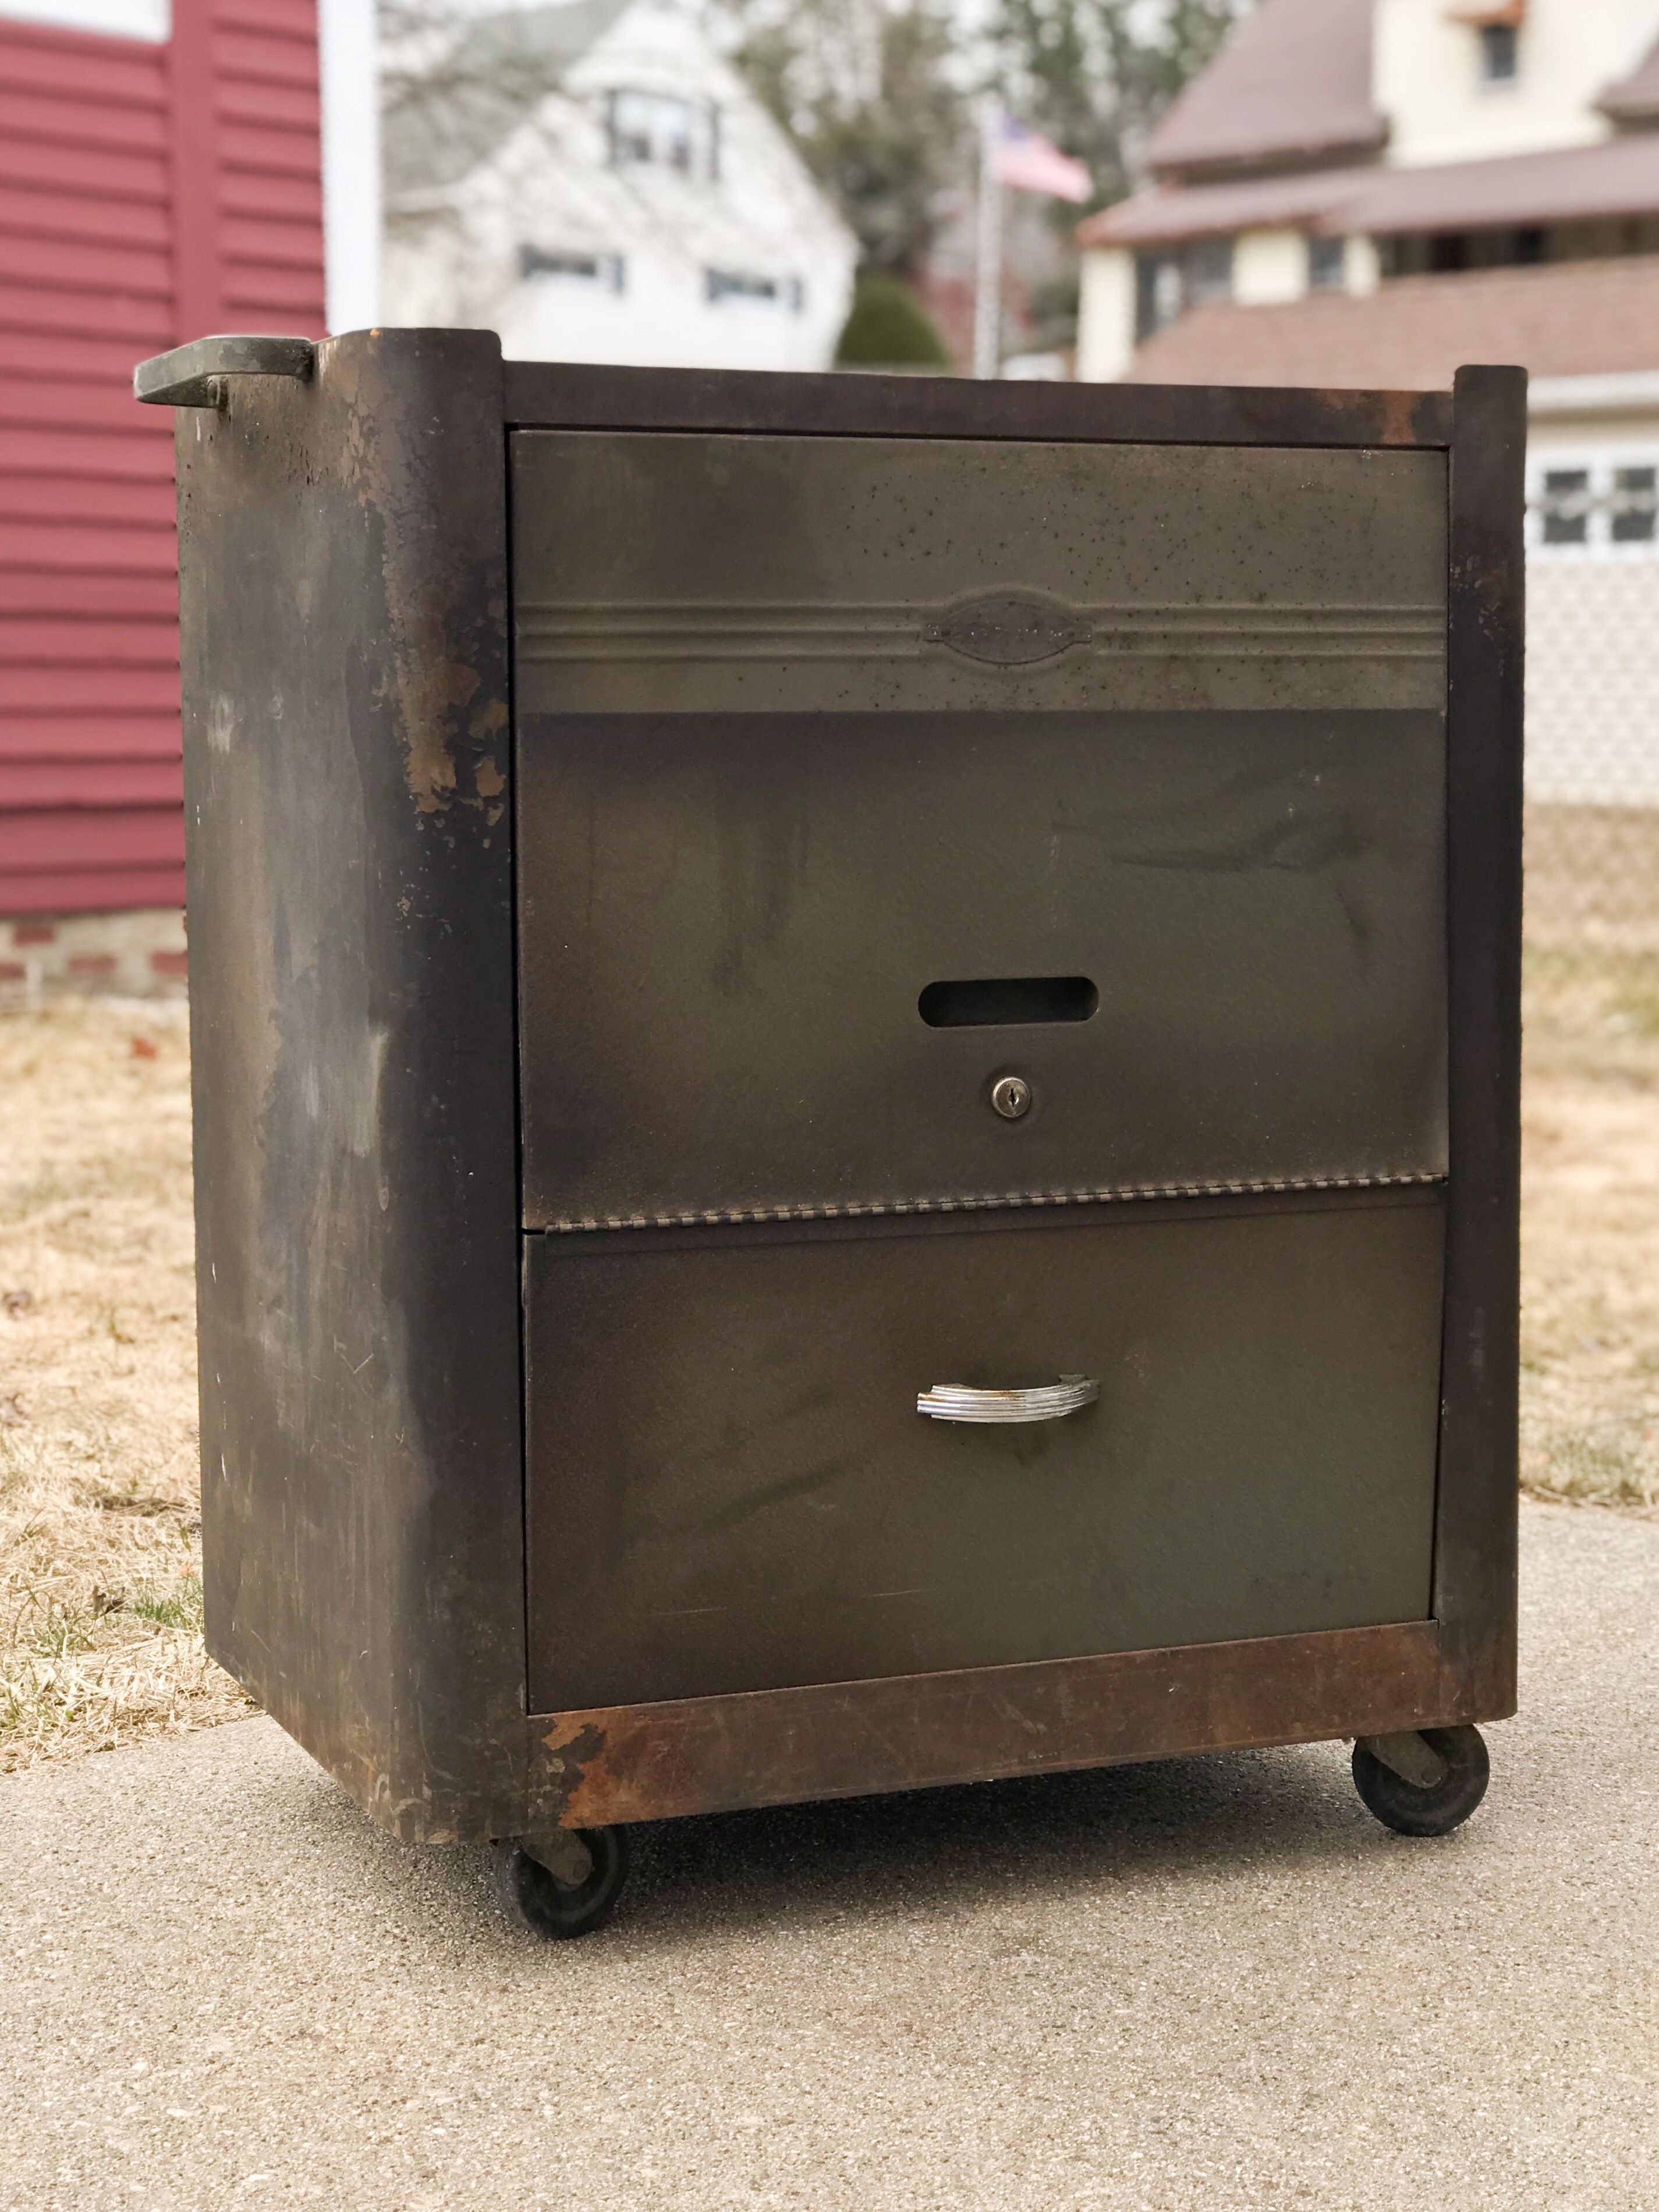 Craftsman deluxe roller c 1949 old tool boxes